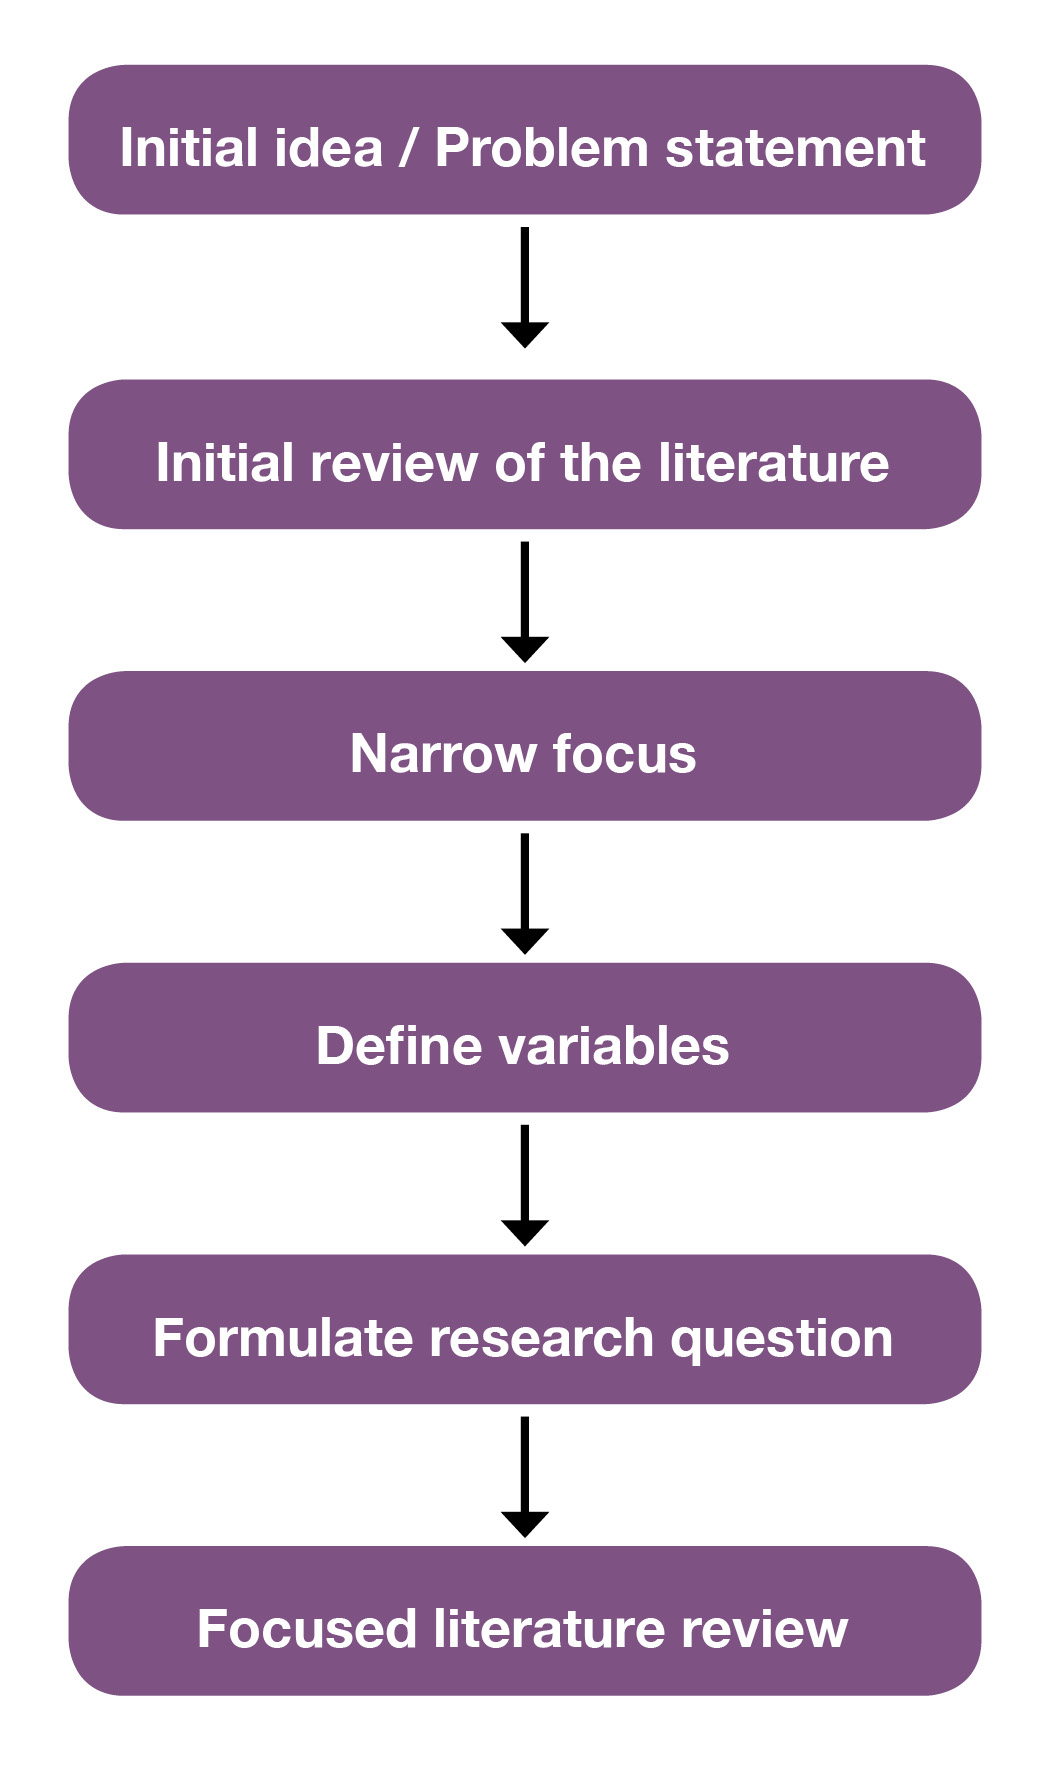 Figure 3.2 shows six boxes labelled with the basic steps in the literature review process, from the initial idea and development of a problem statement to an initial review of the literature. After narrowing focus and define variables, the research question is formulated and the focused literature review begins.